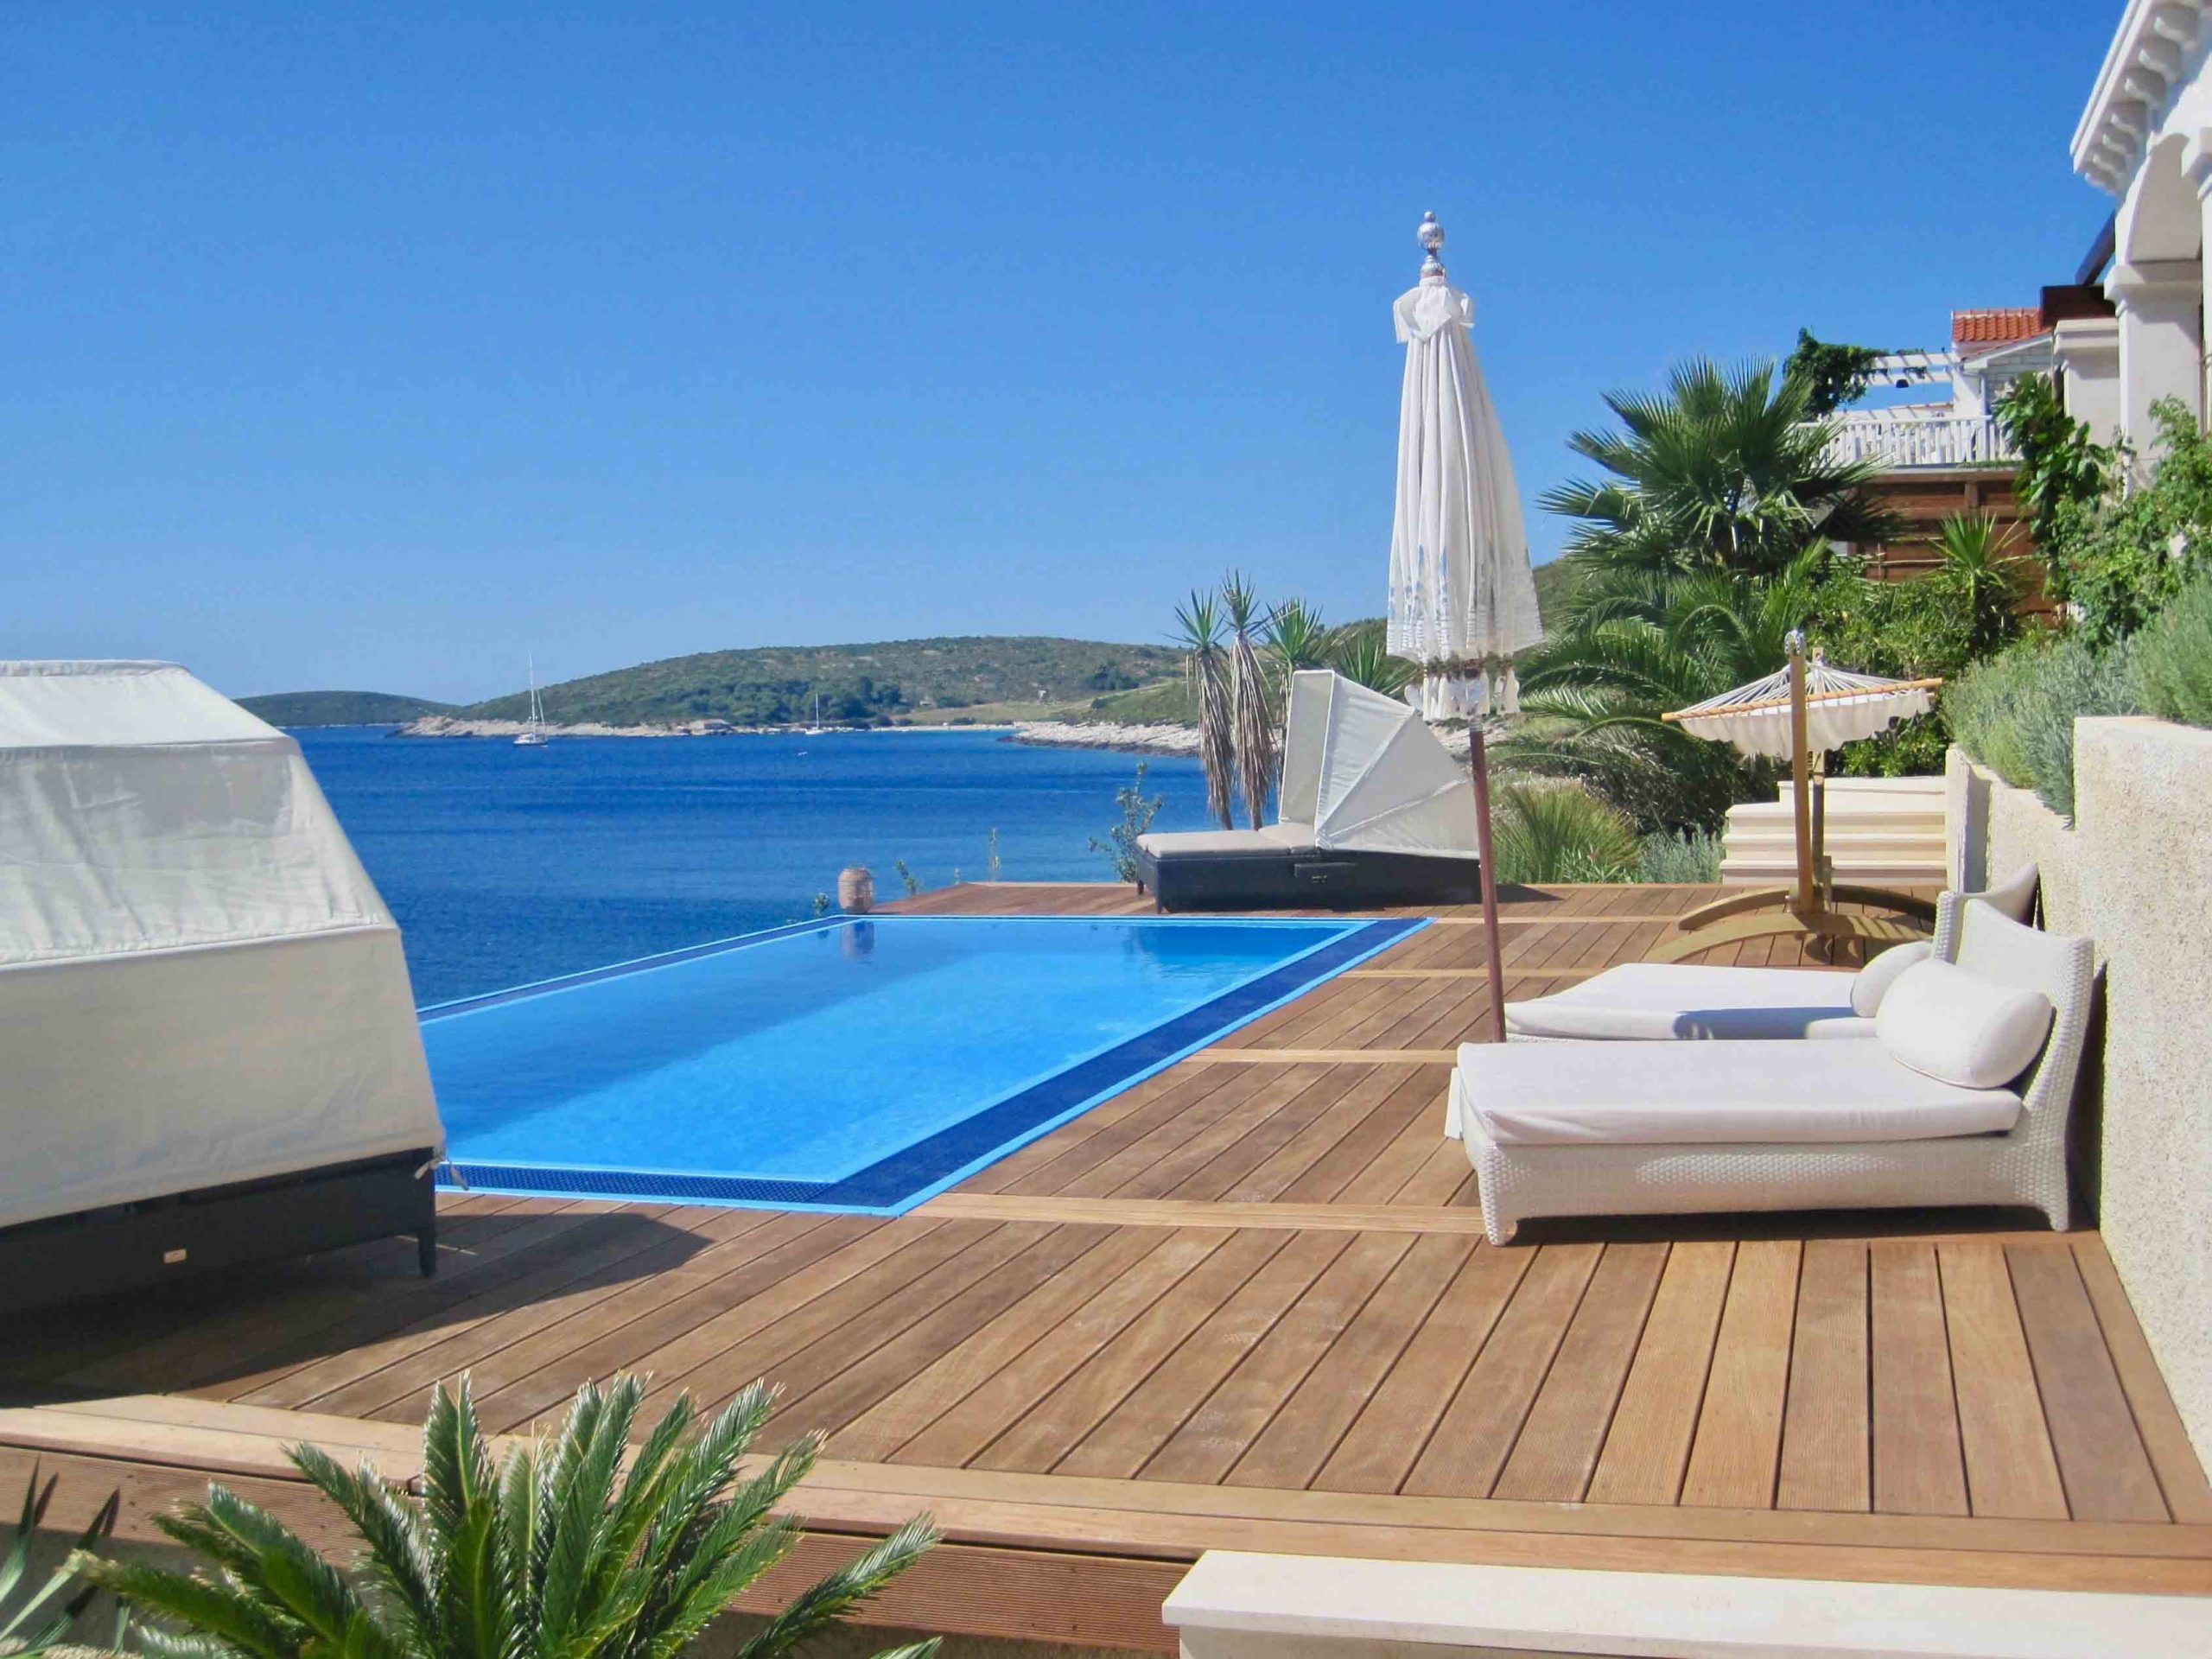 Seaside holiday villa - infinity pool